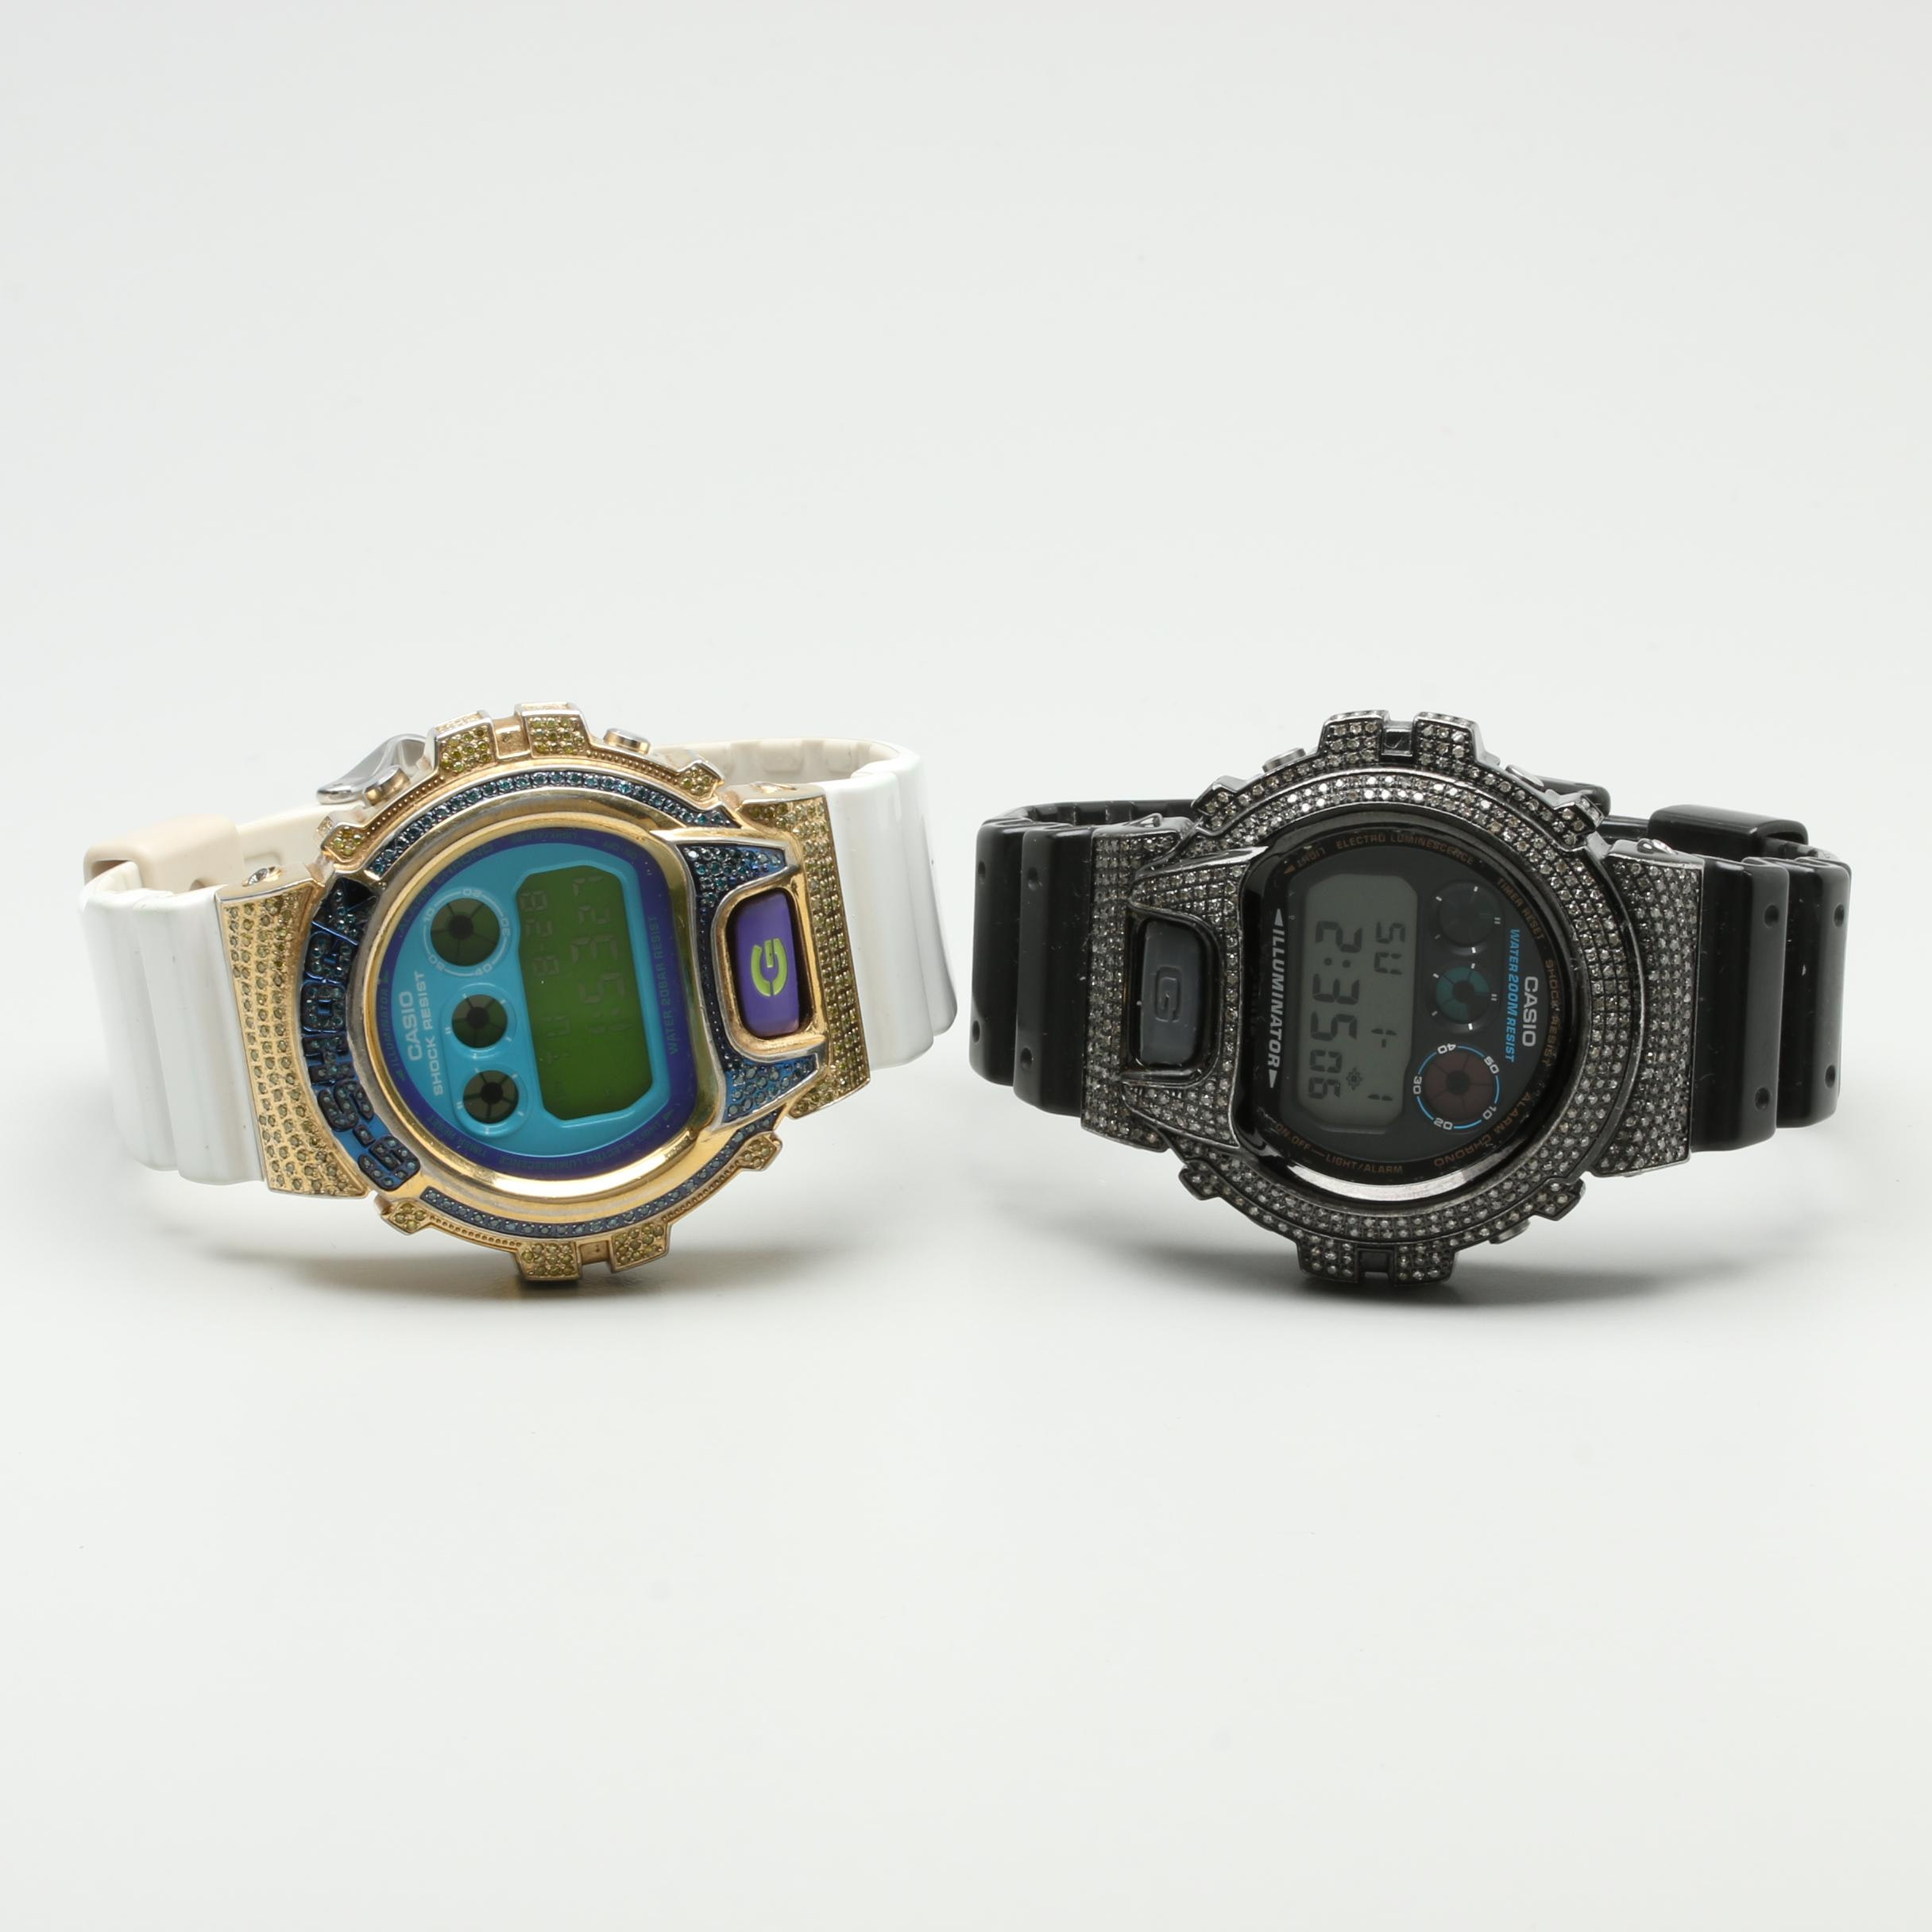 Casio G-Shock Wristwatches Including 1.09 CTW Diamonds